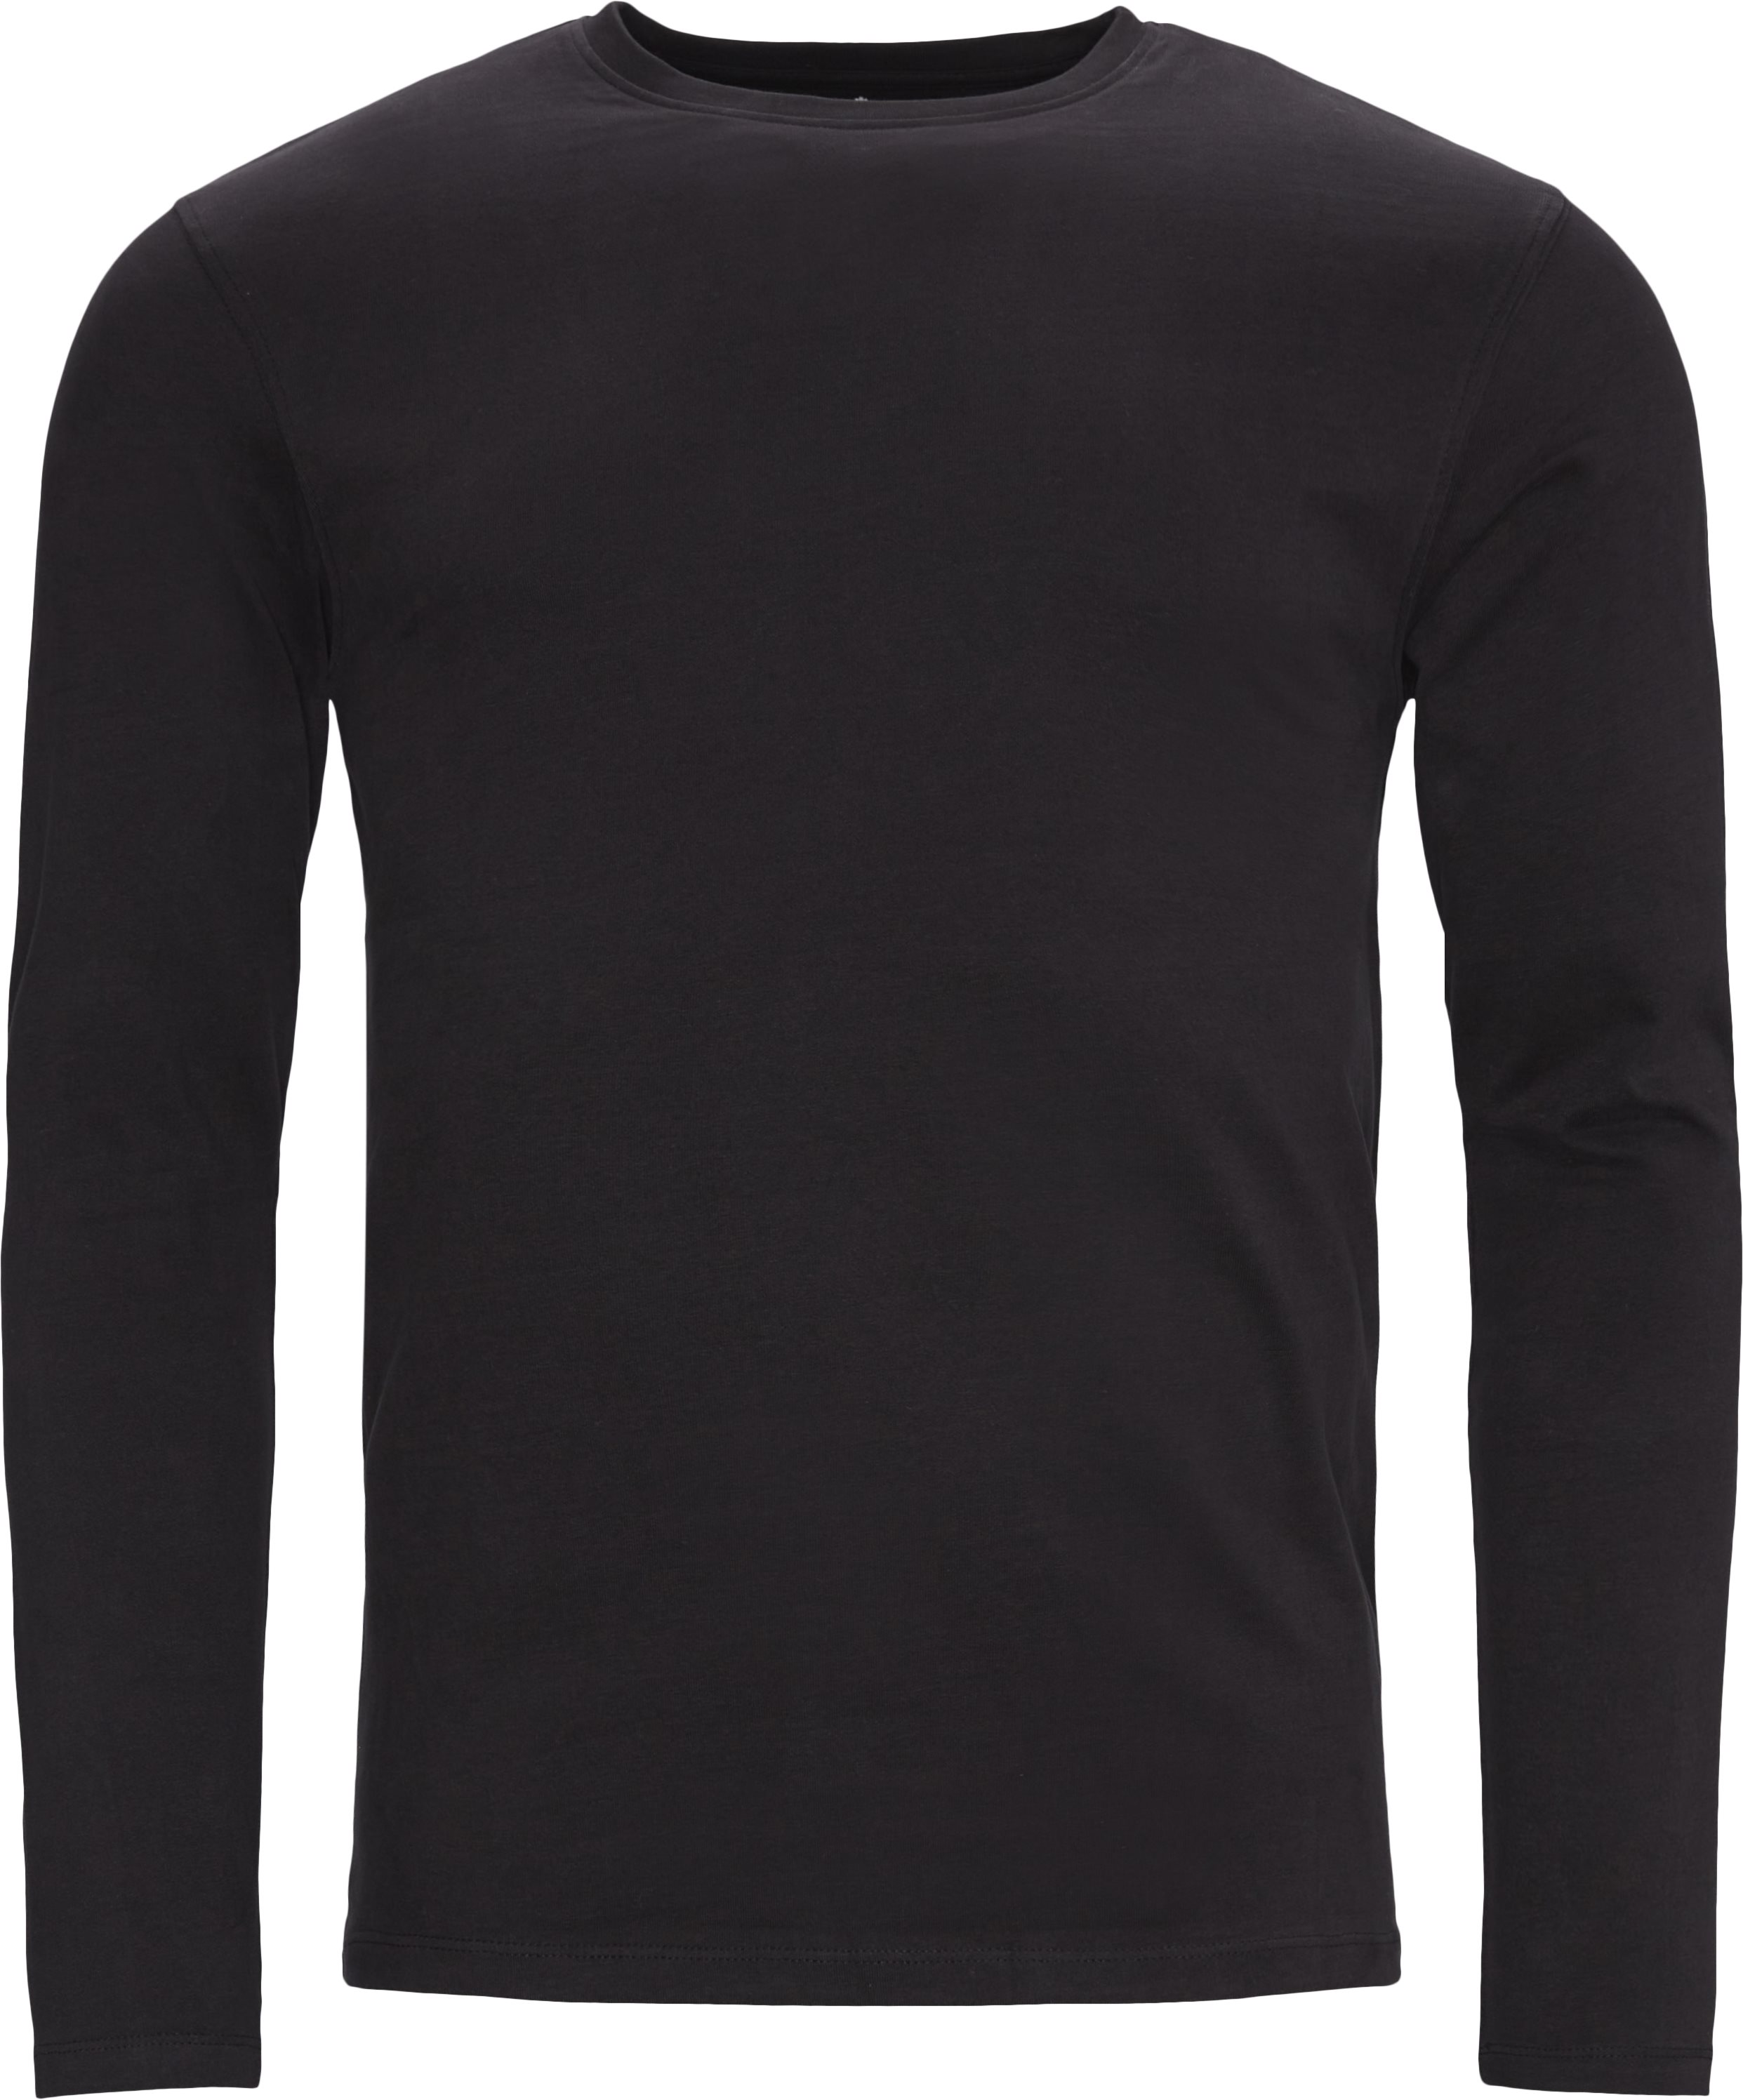 Ray Long Sleeve Tee - T-shirts - Regular - Sort